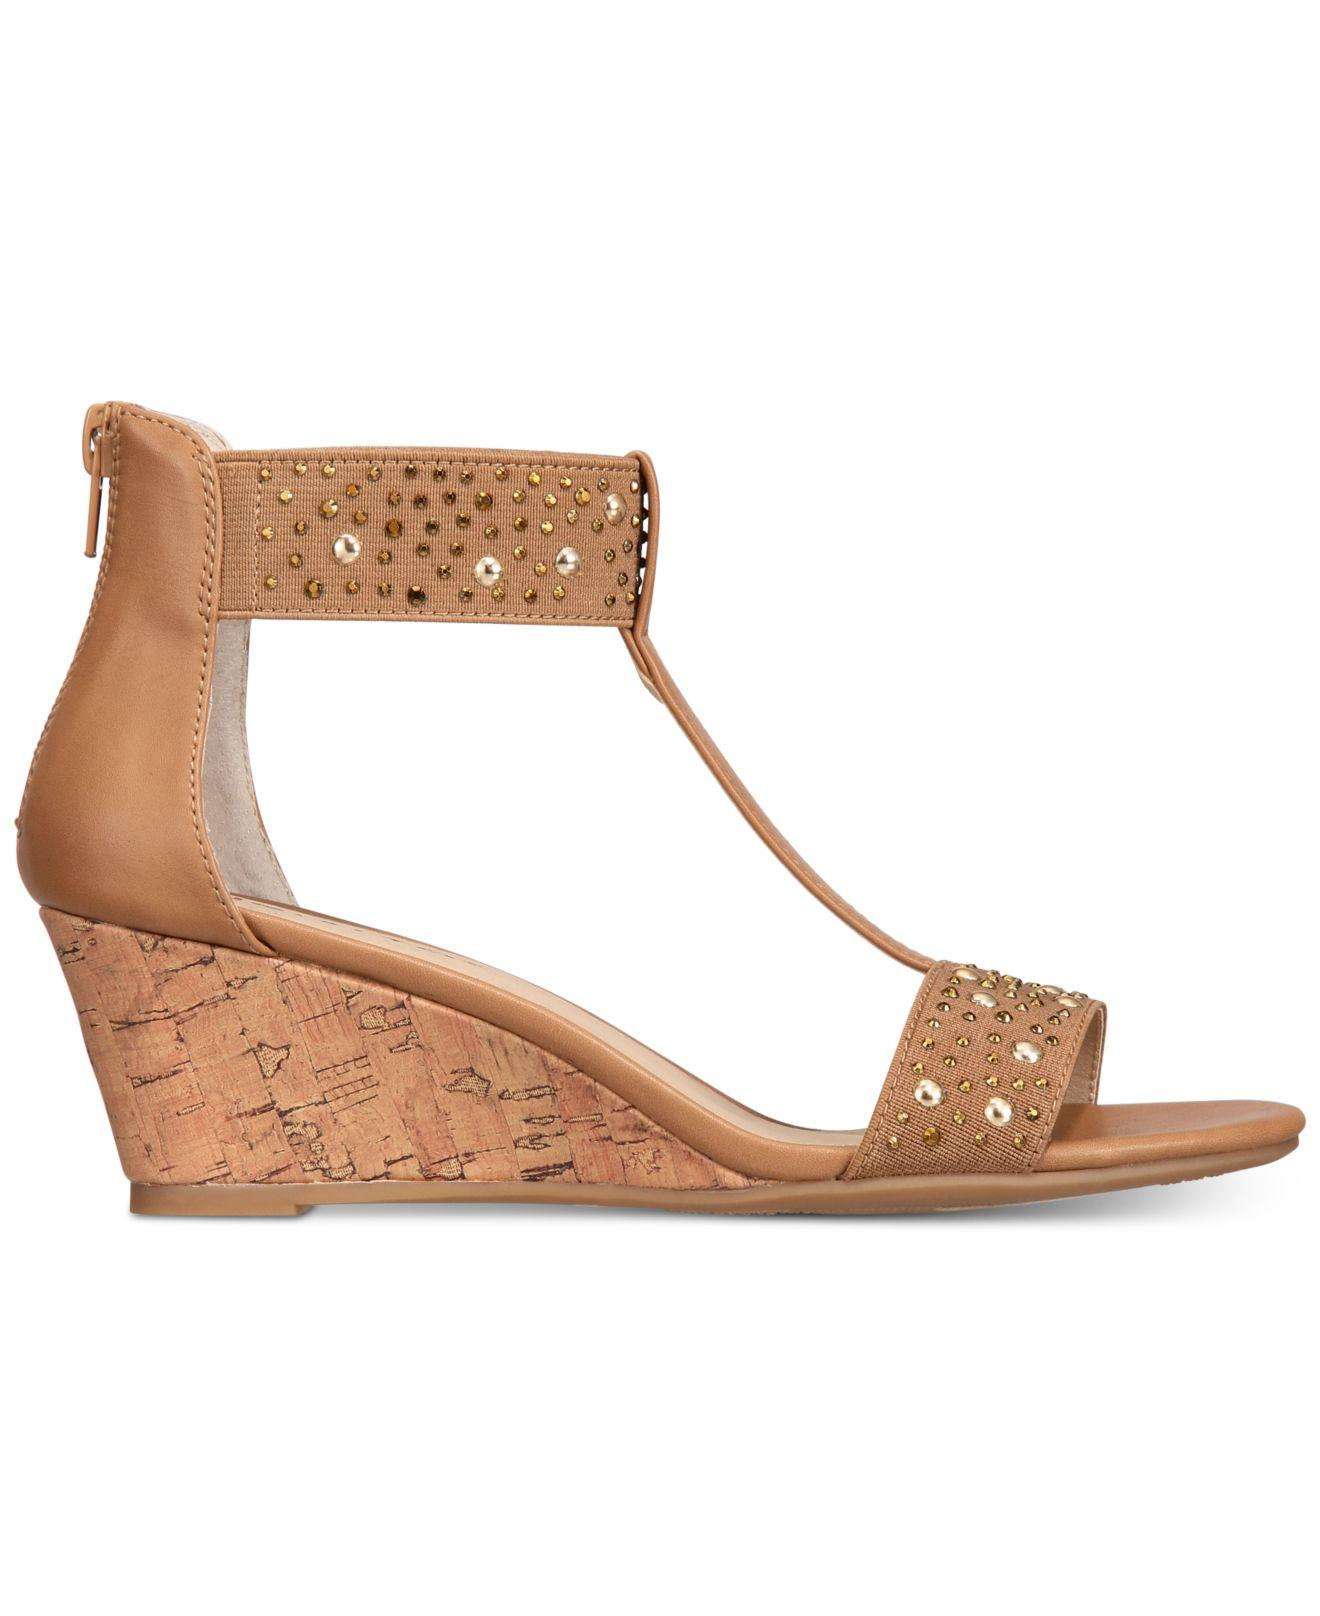 cc7552c1336 Lyst - Rialto Cleo Embellished Wedge Sandals in Natural